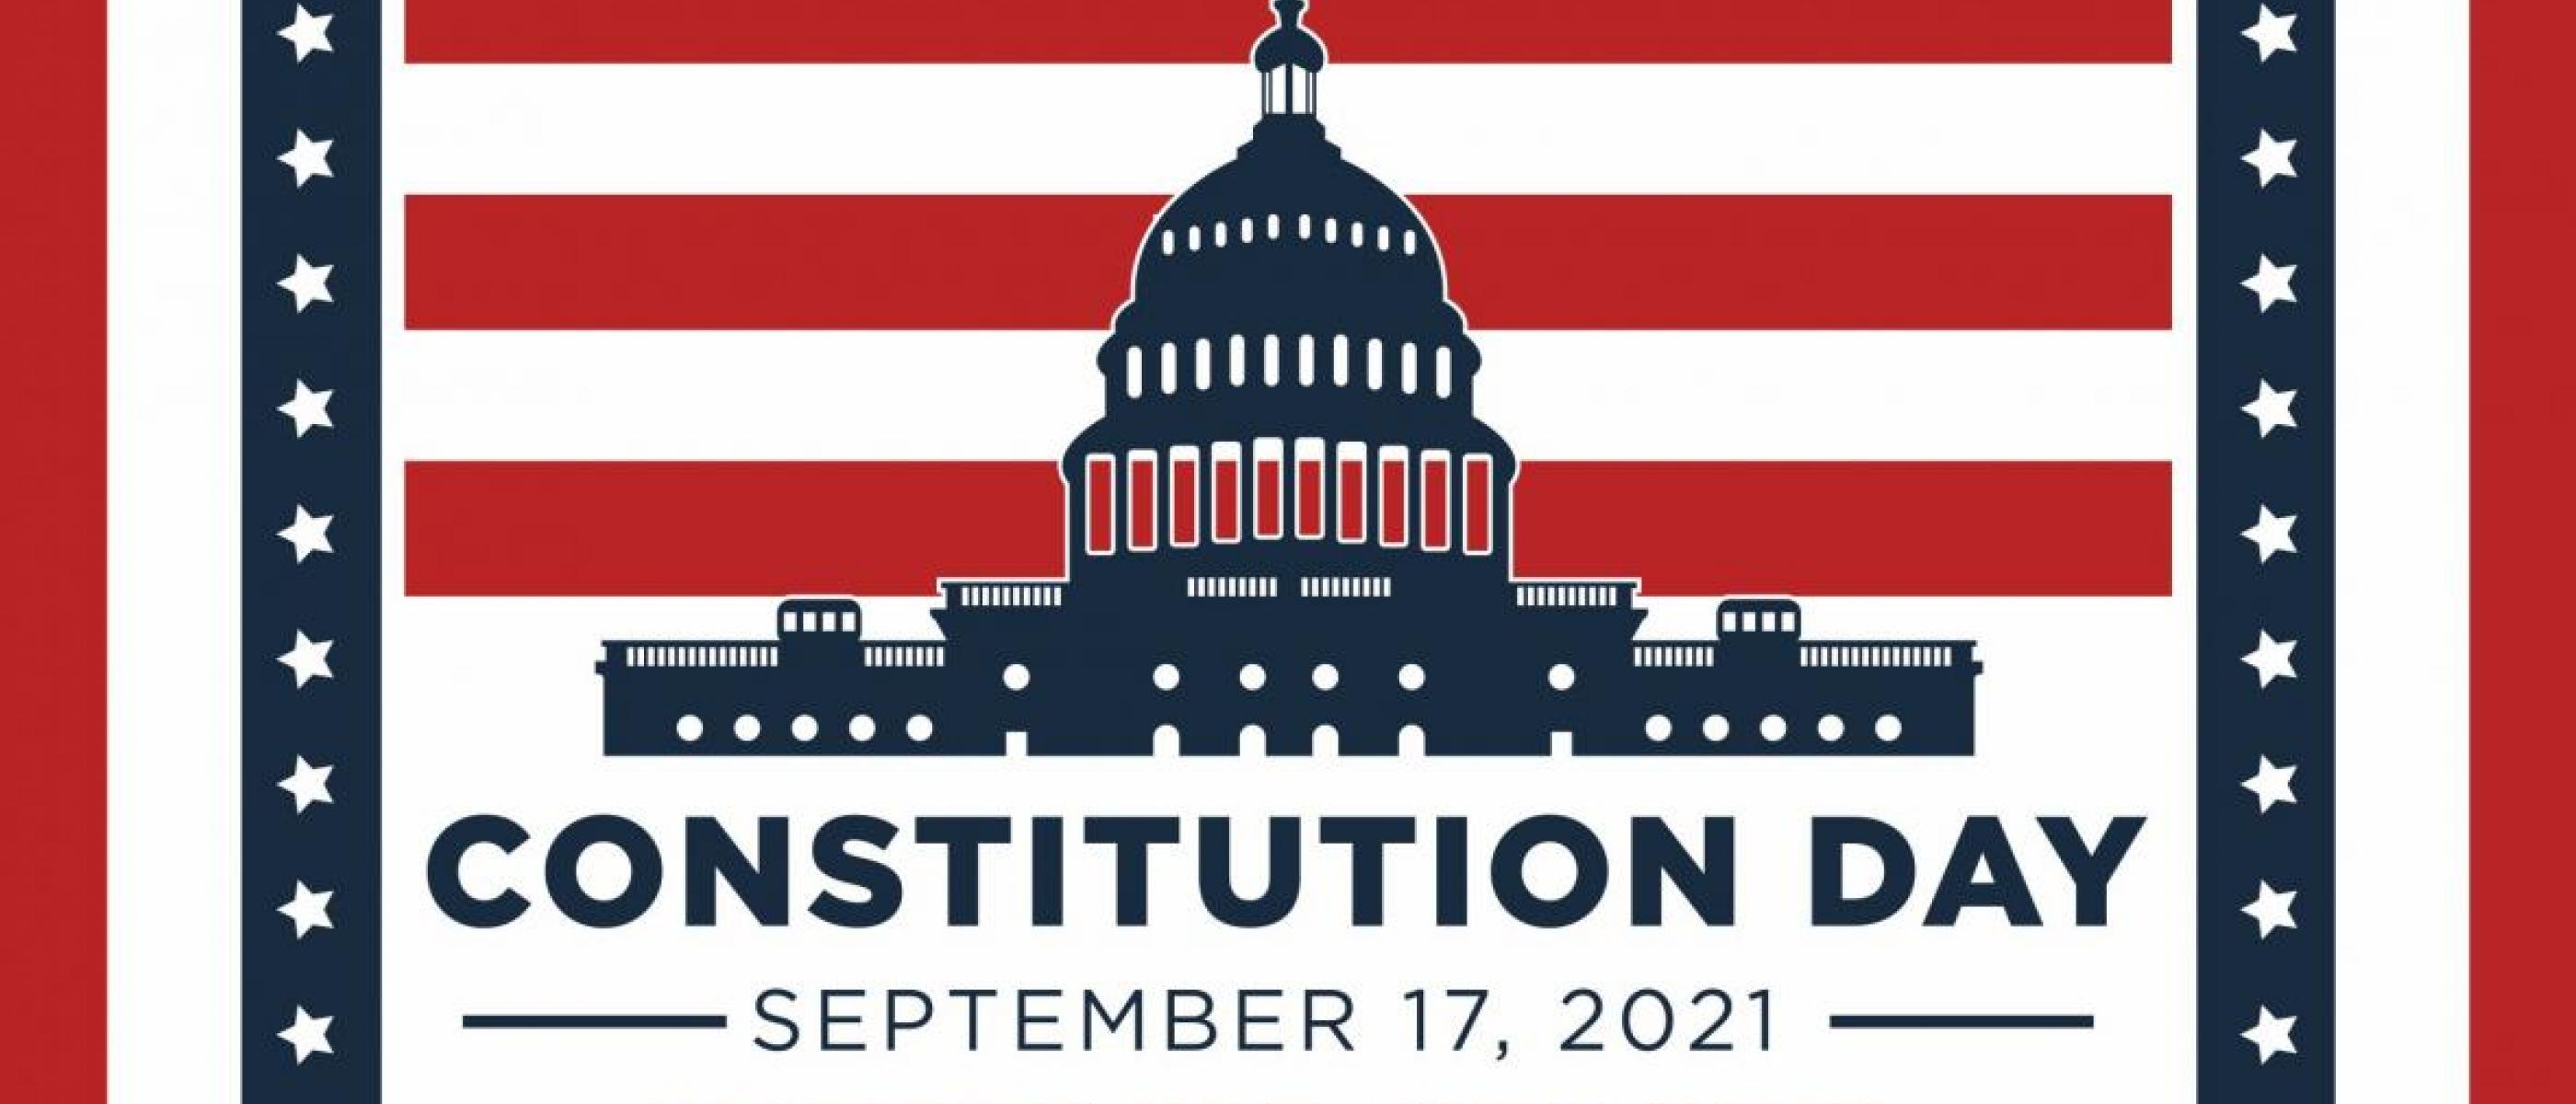 Constitution Day Sept. 17 2021 Northern State University with stars and stripes and a nation's capitol background